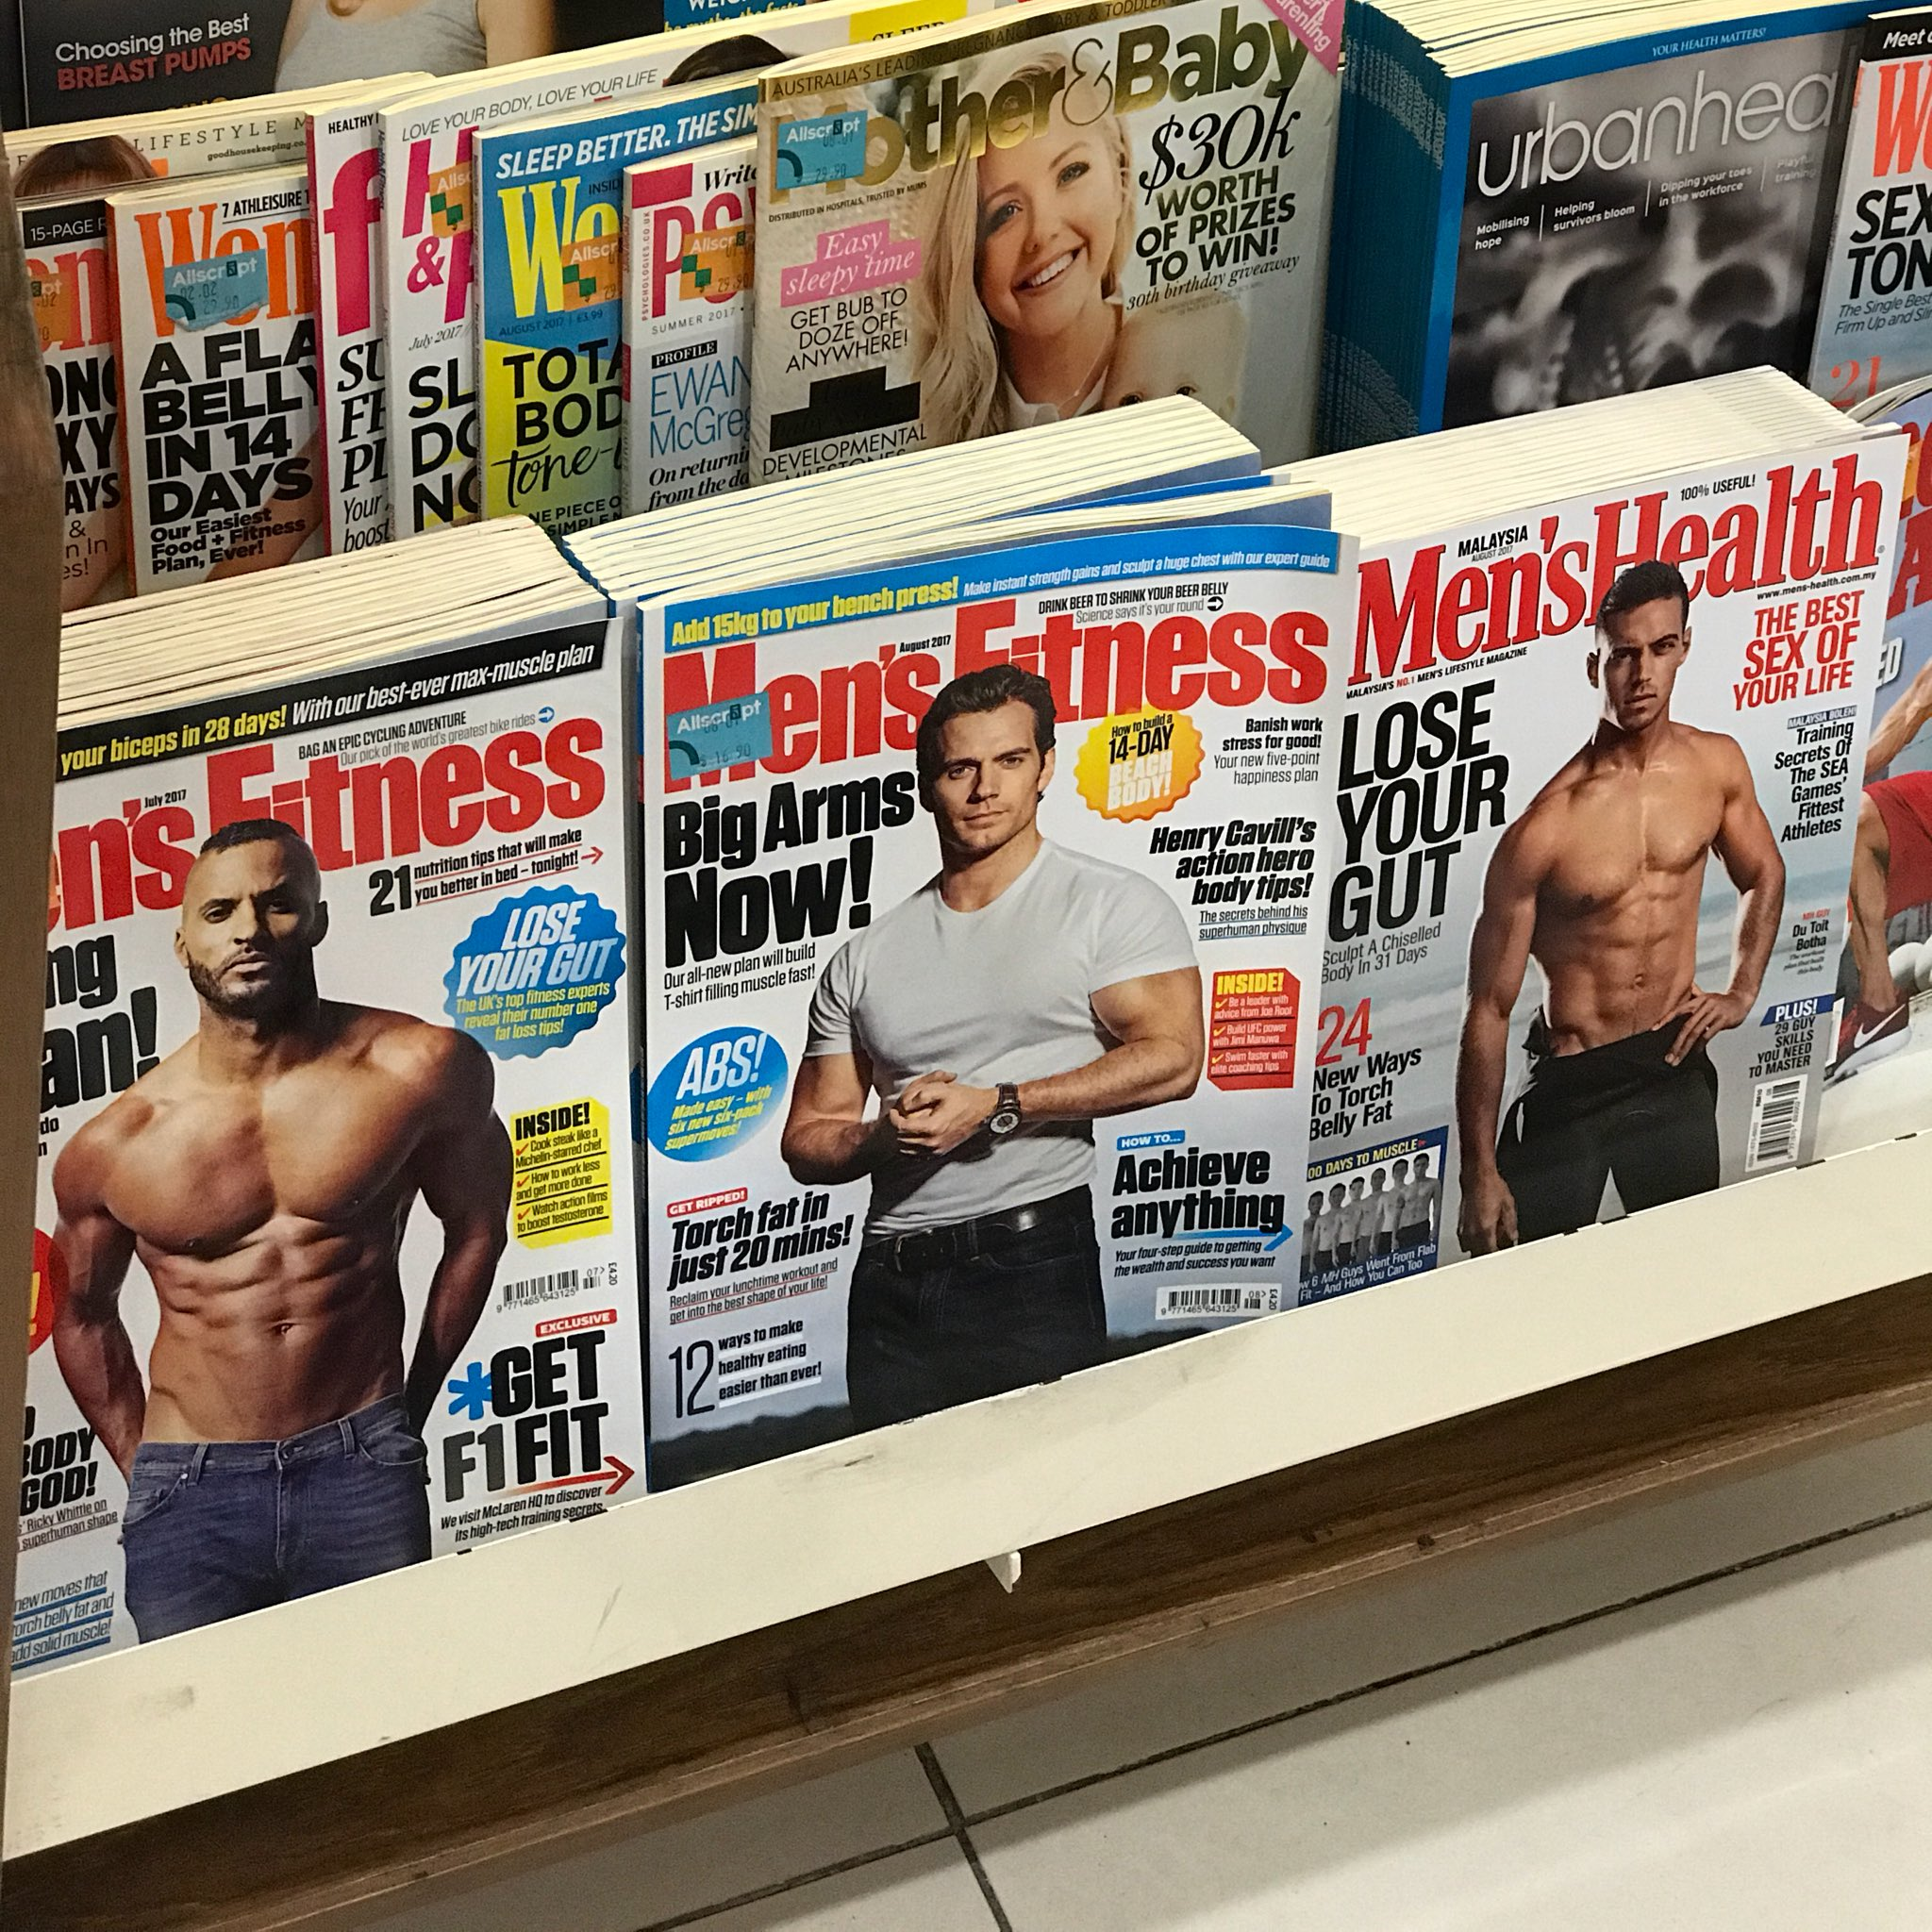 RT @legendpoe: i spy with my eyes @MrRickyWhittle on the shelves !!!! https://t.co/kVzRqA2CXf